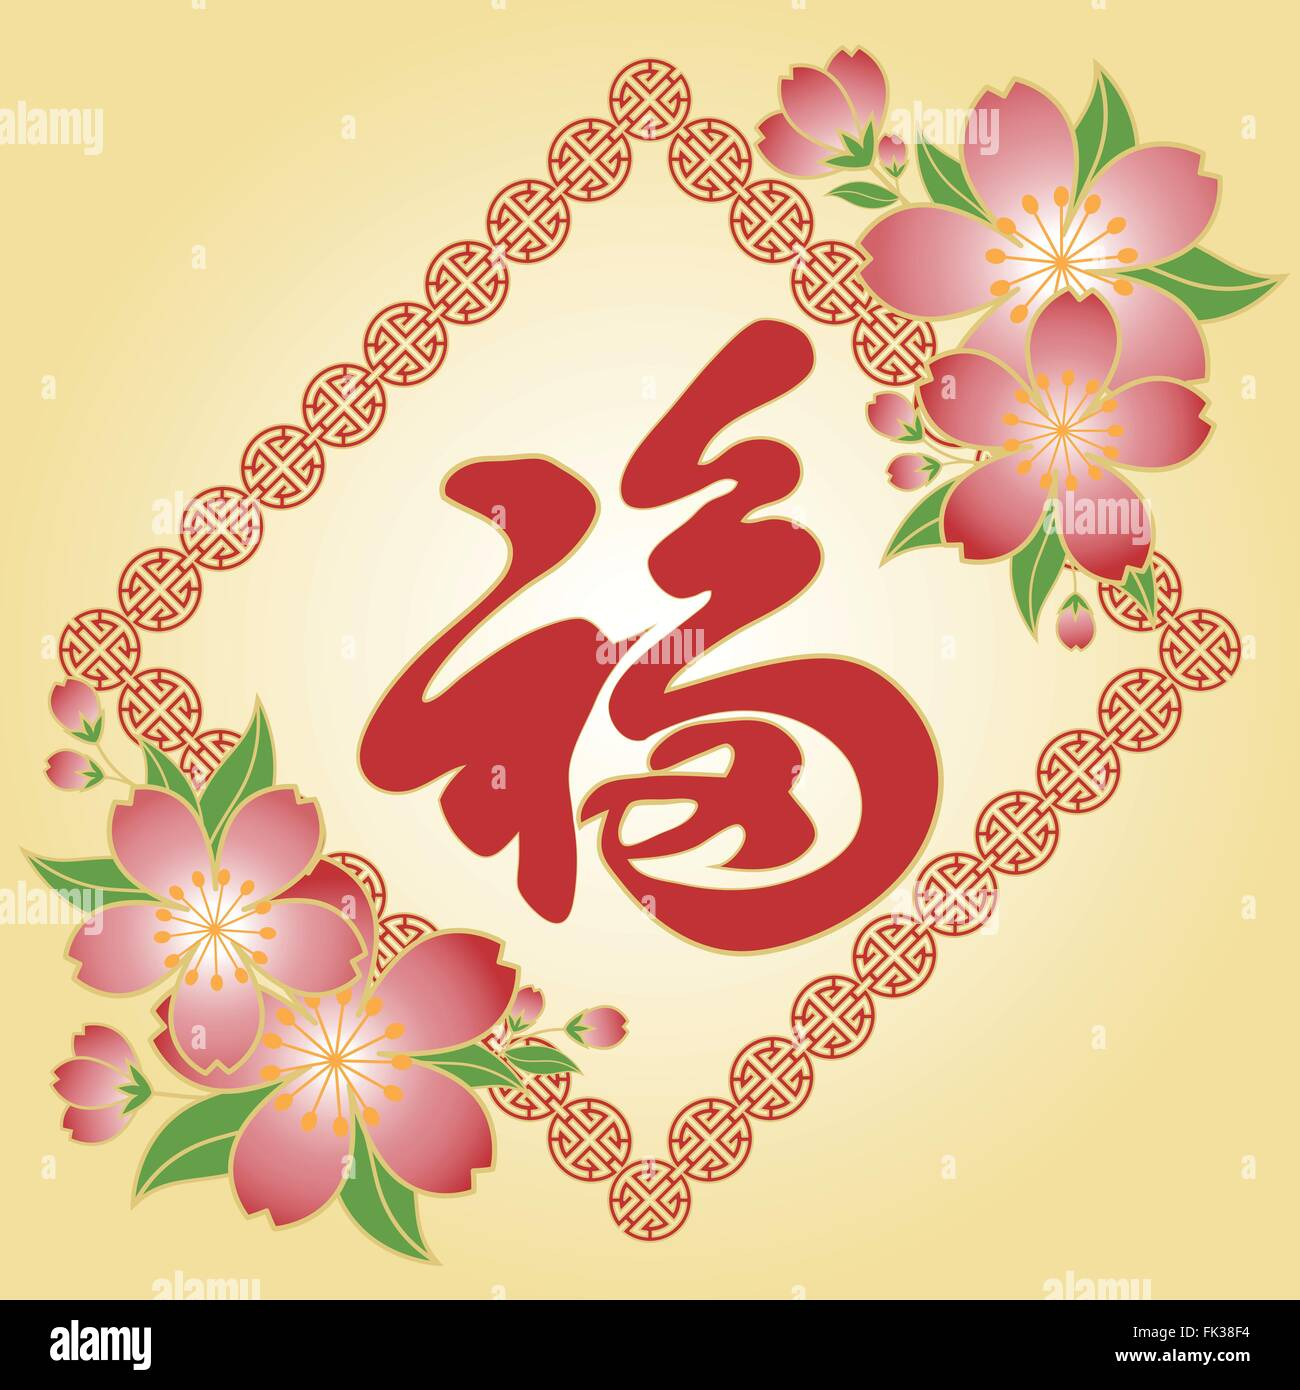 Chinese new year cherry blossom greeting card stock vector art chinese new year cherry blossom greeting card m4hsunfo